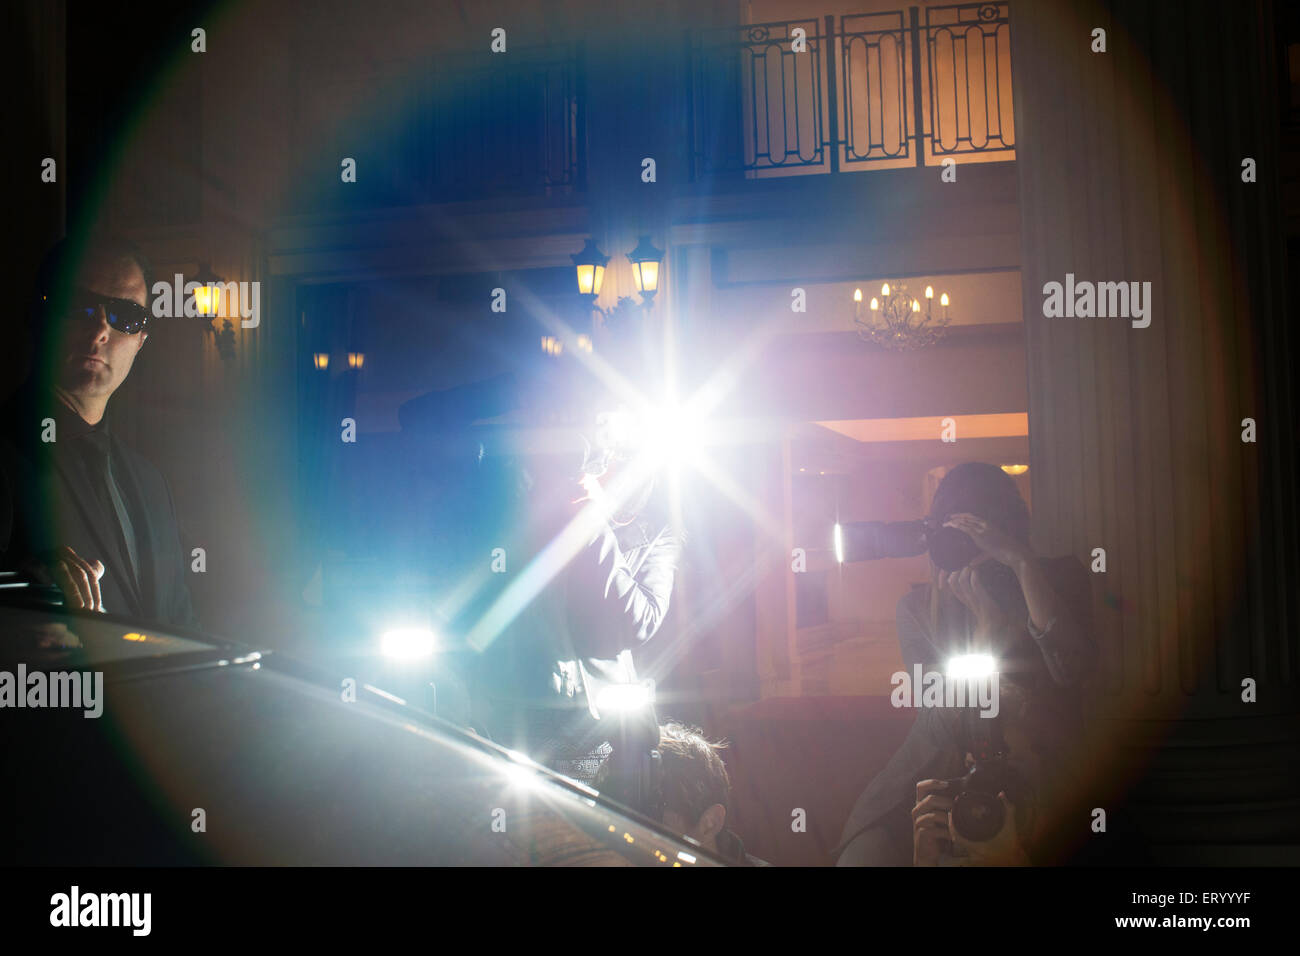 Lens flare from paparazzi photographing at event - Stock Image